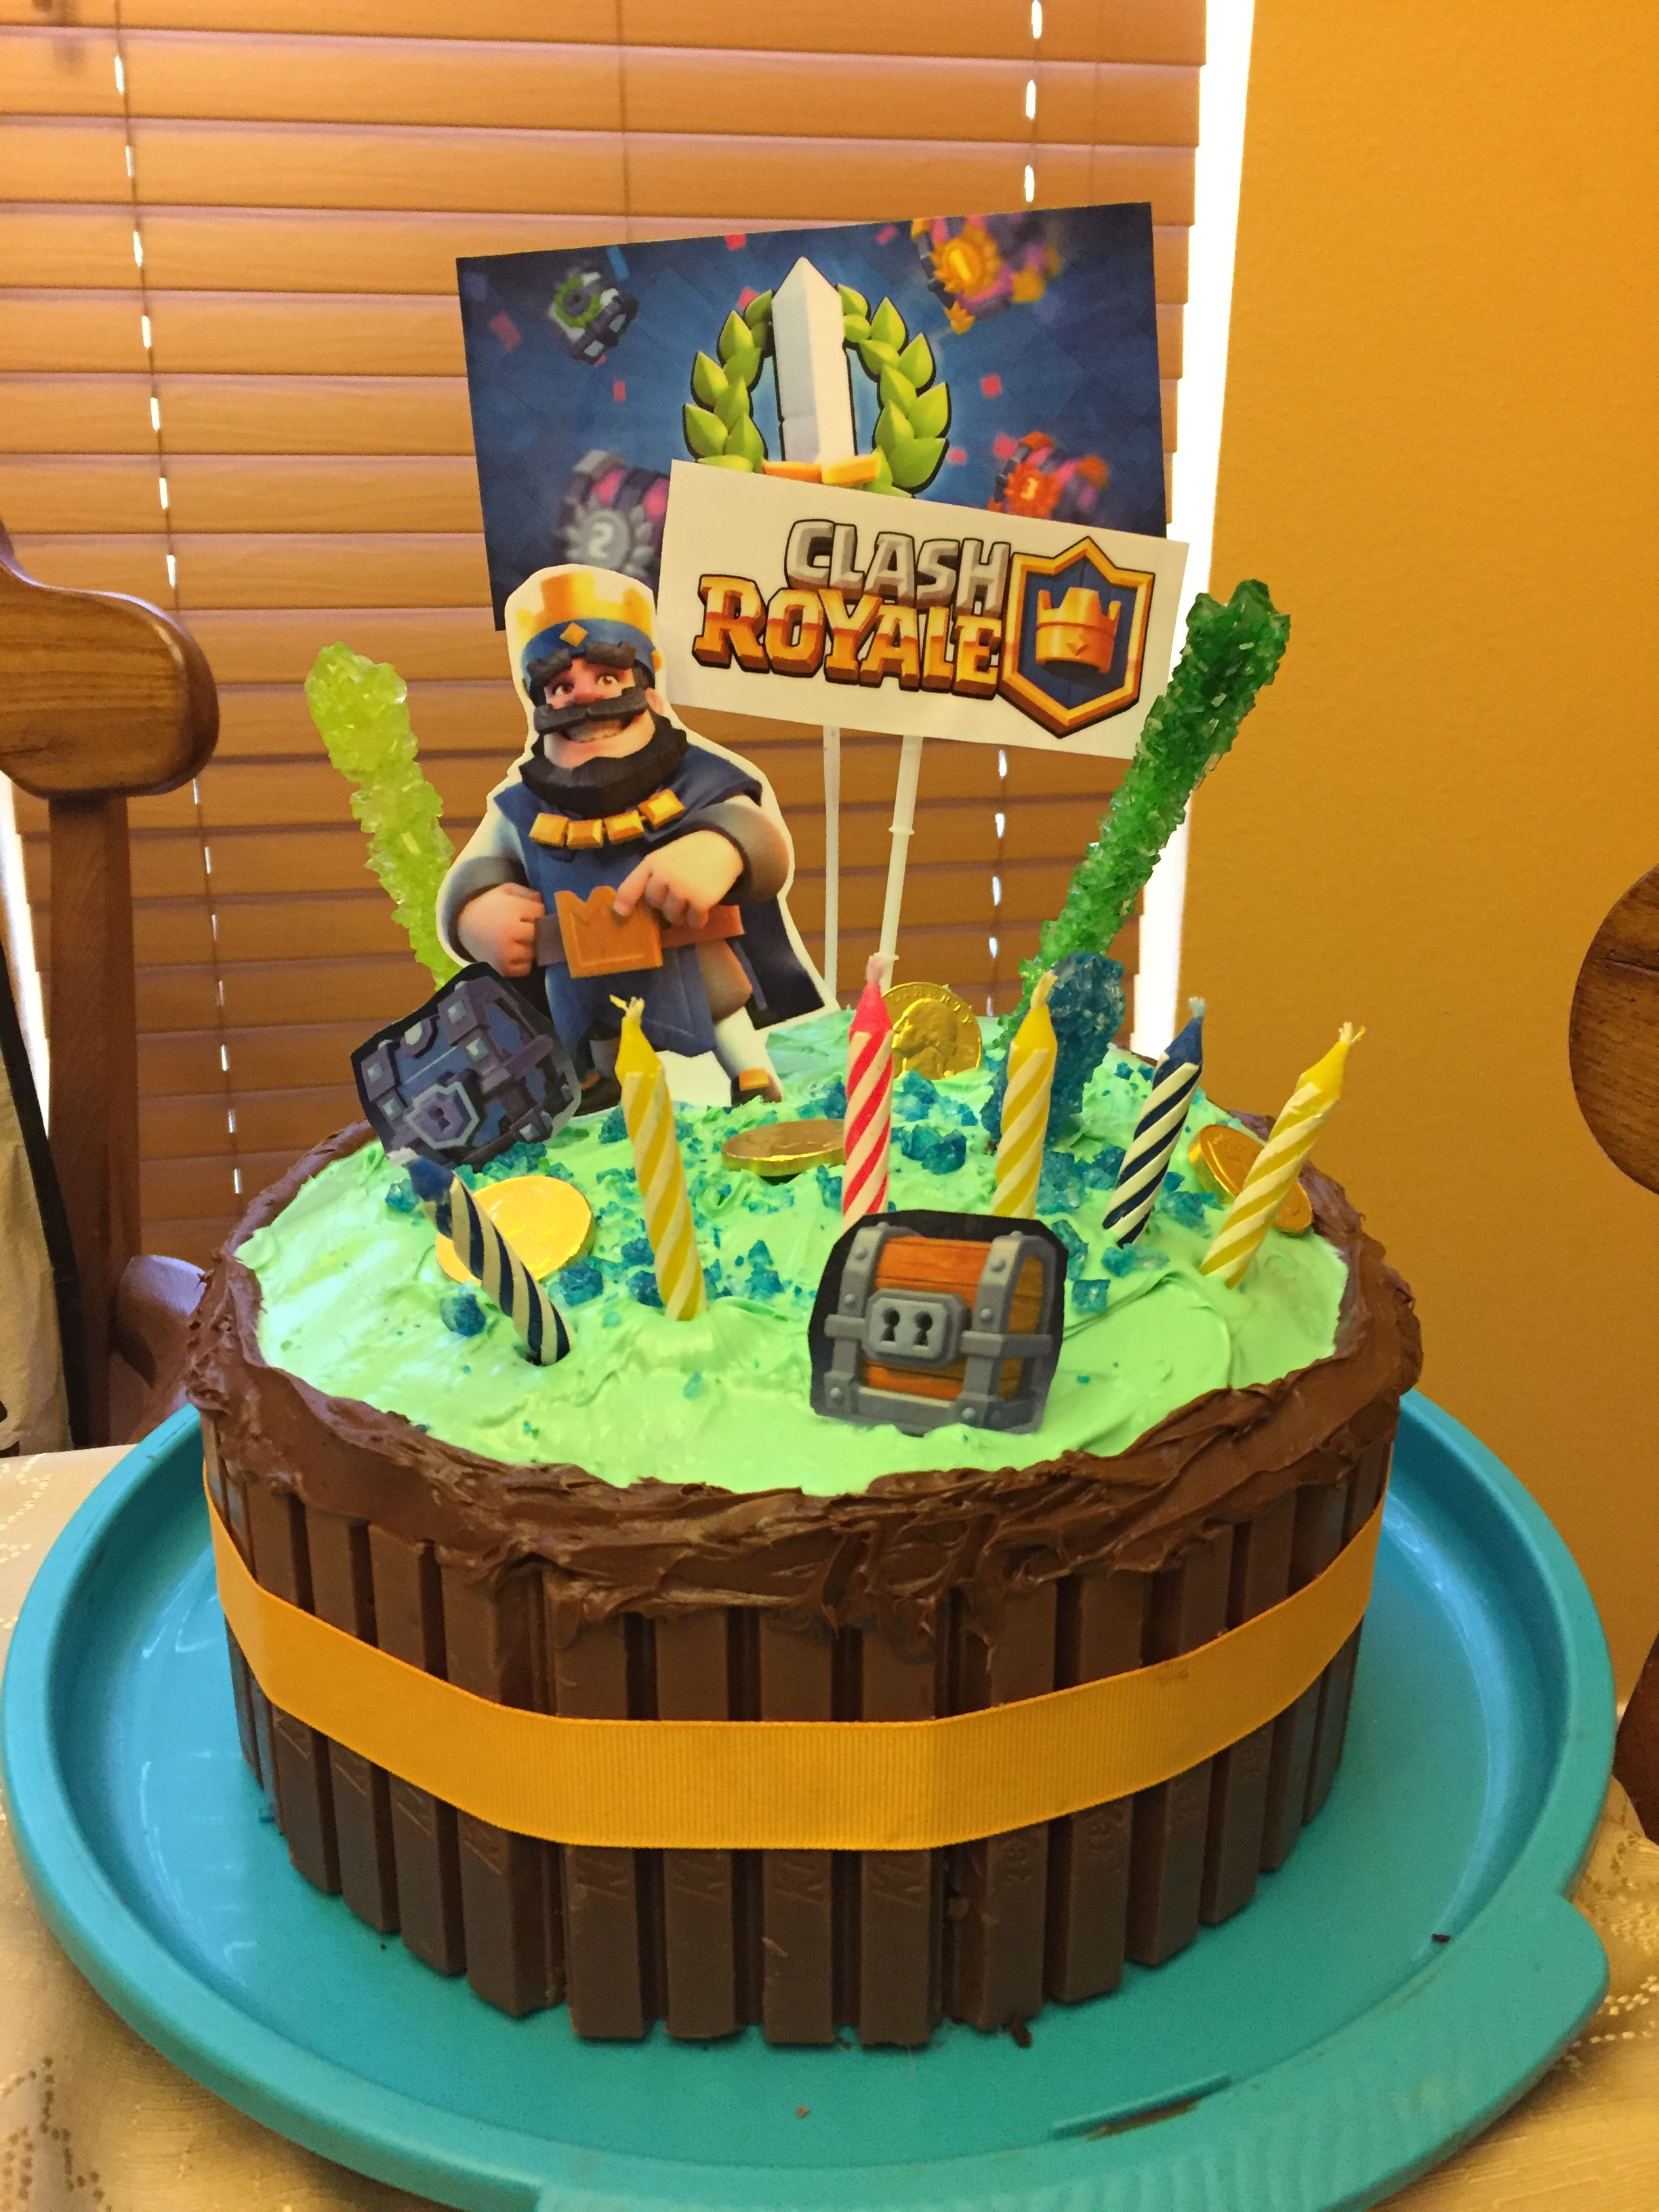 Clash Royale Birthday Cake Idea With Images Clash Royale Cake